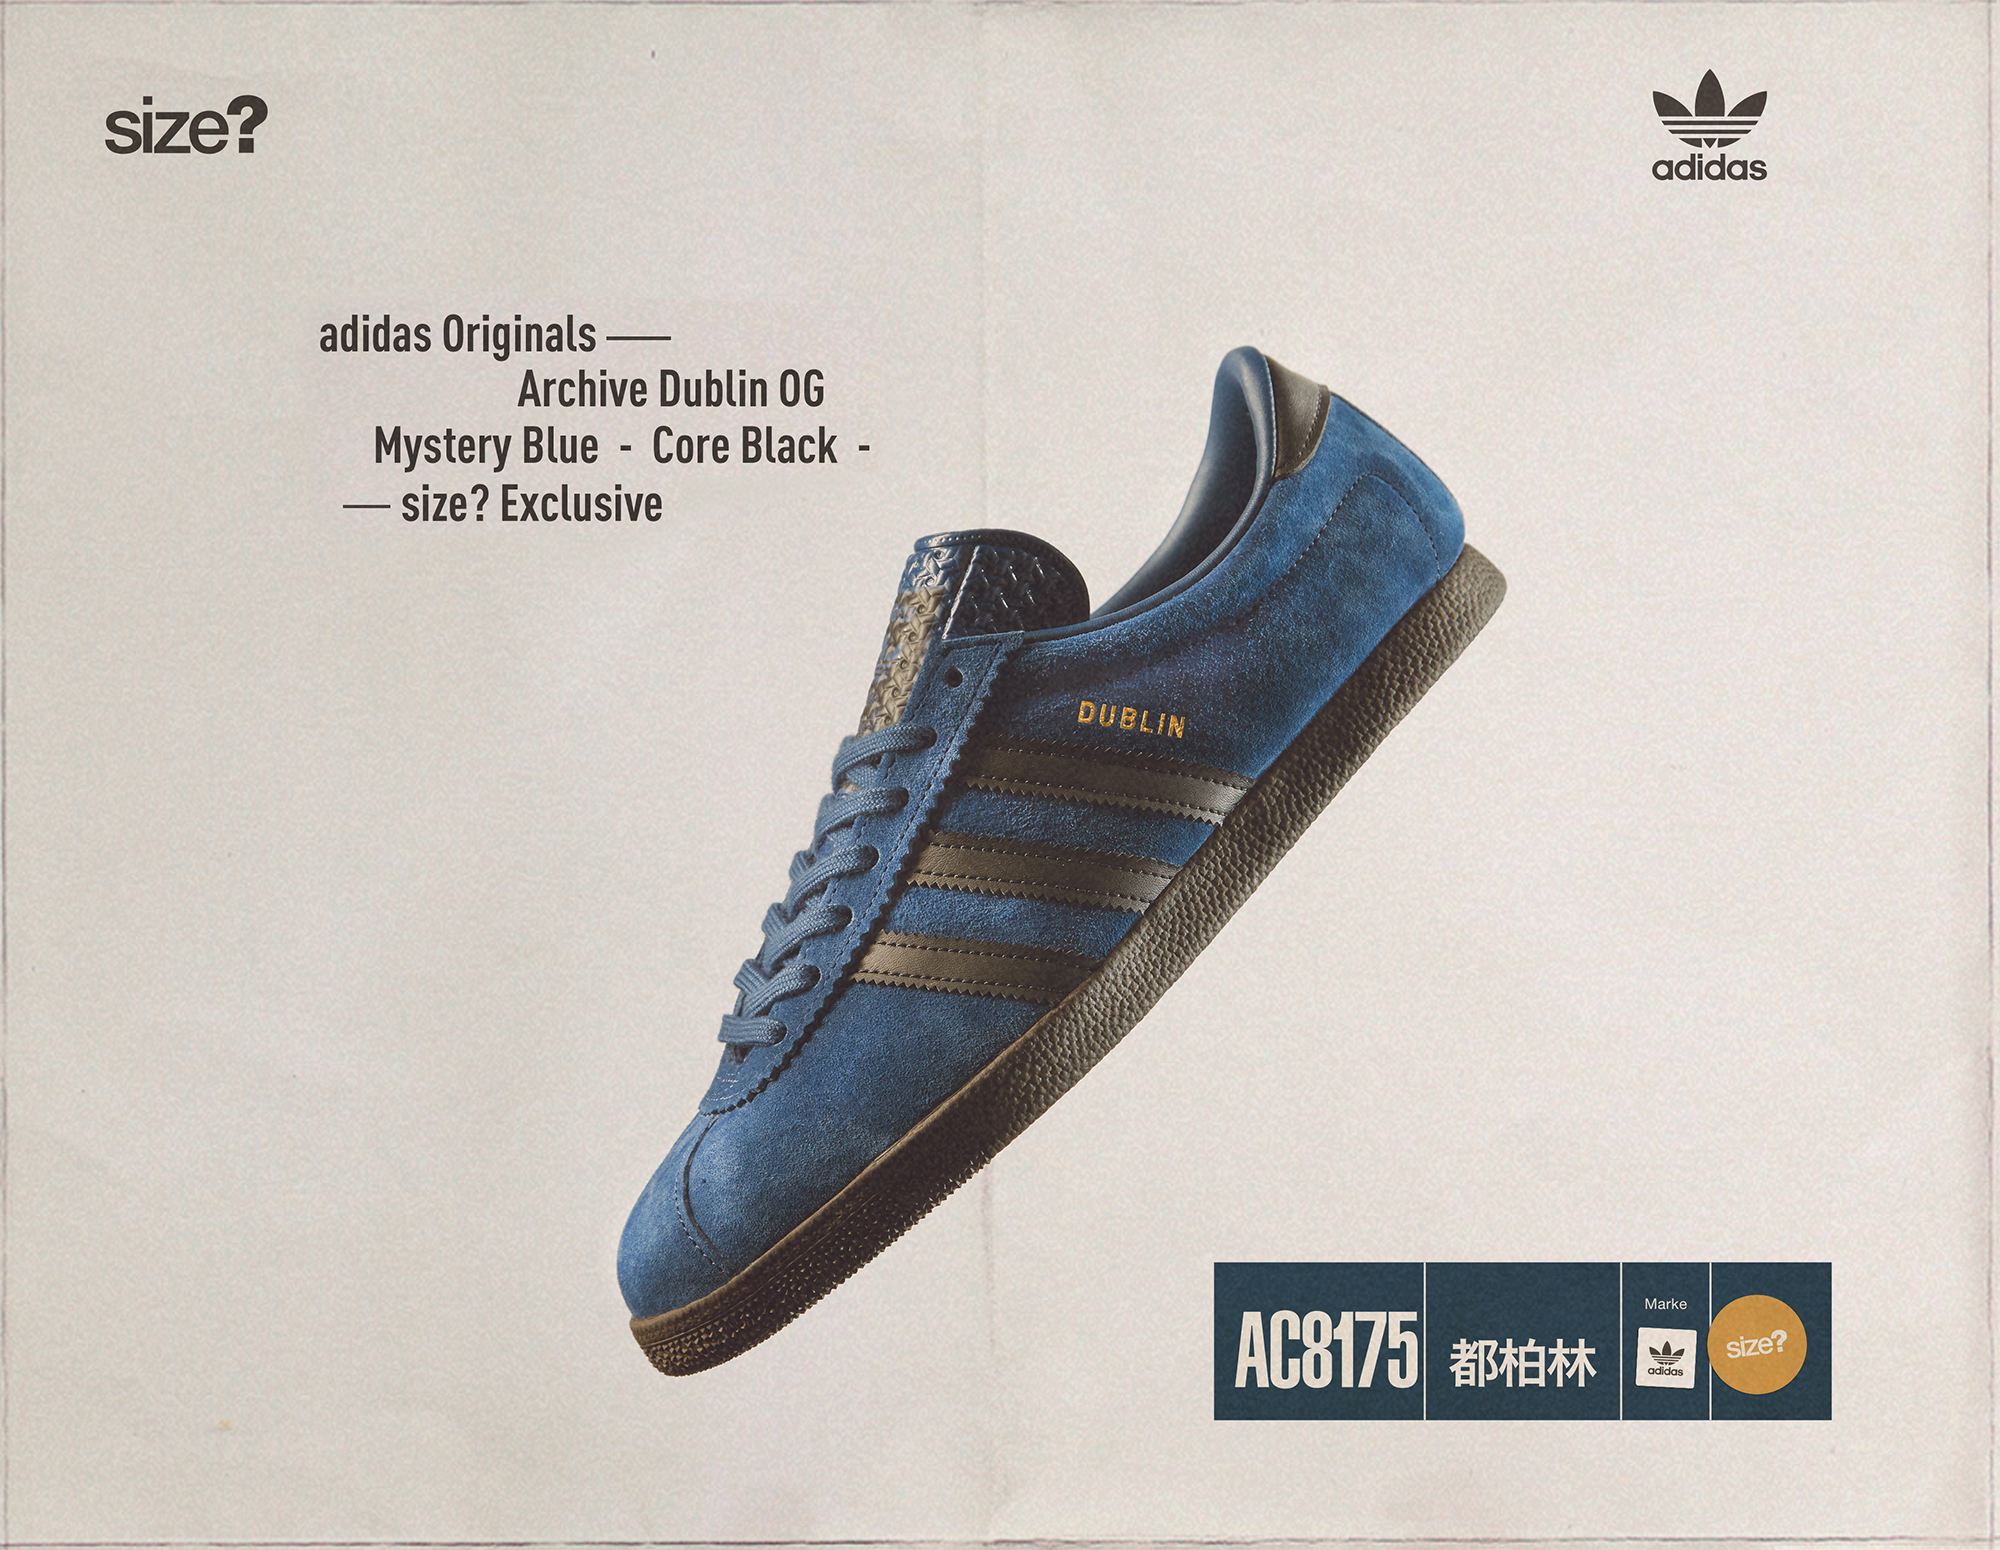 adidas Originals Archive Dublin 'Taiwan' – size? Exclusive